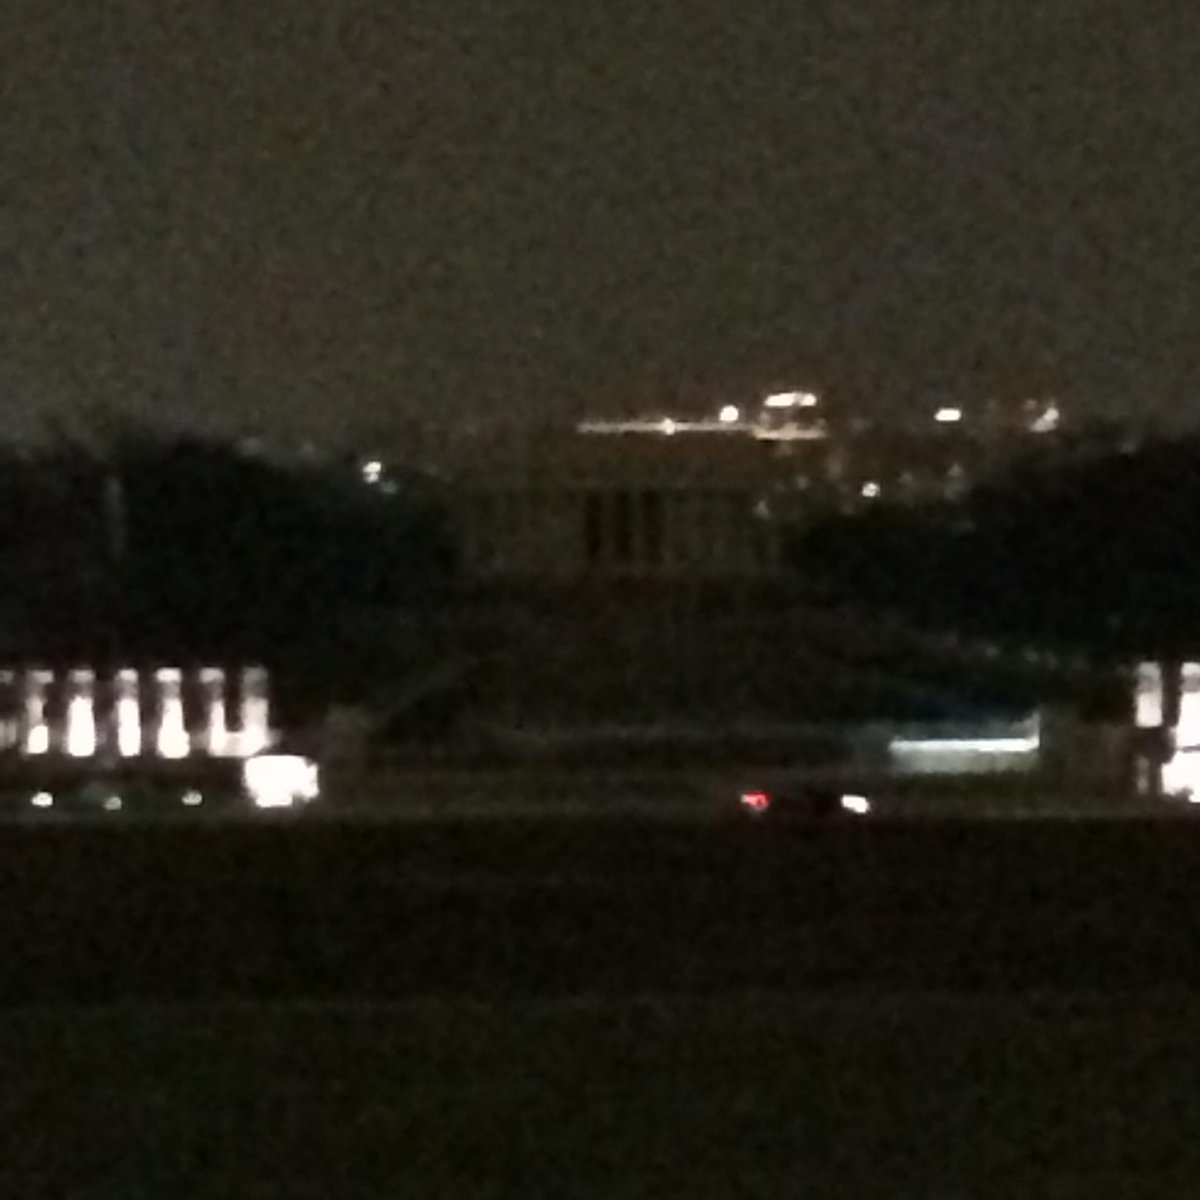 Thanks, @nbcwashington, for explanation of why Lincoln Memorial was dark this morning. http://t.co/GtehsYKWX6